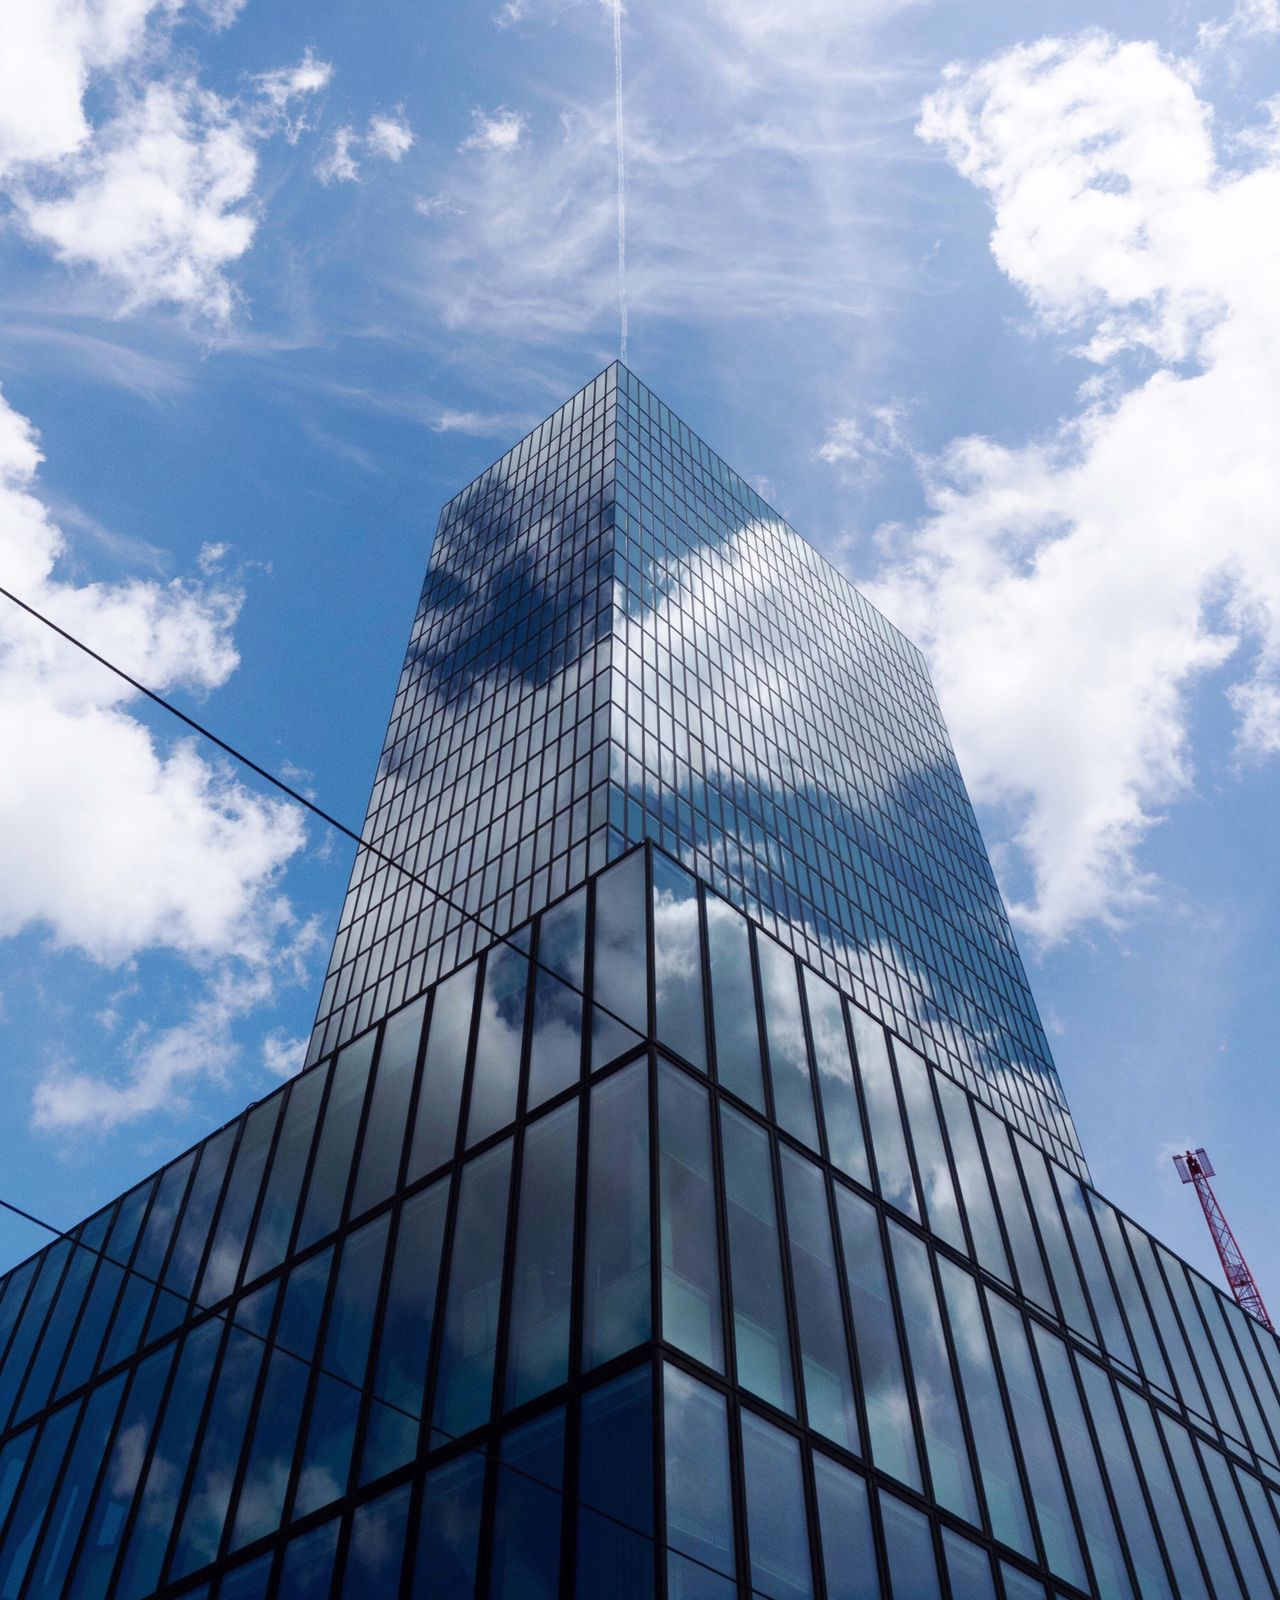 Architecture Built Structure Low Angle View Modern Building Exterior Sky Cloud - Sky Day Reflection Skyscraper No People Outdoors City The Architect - 2017 EyeEm Awards at Basel